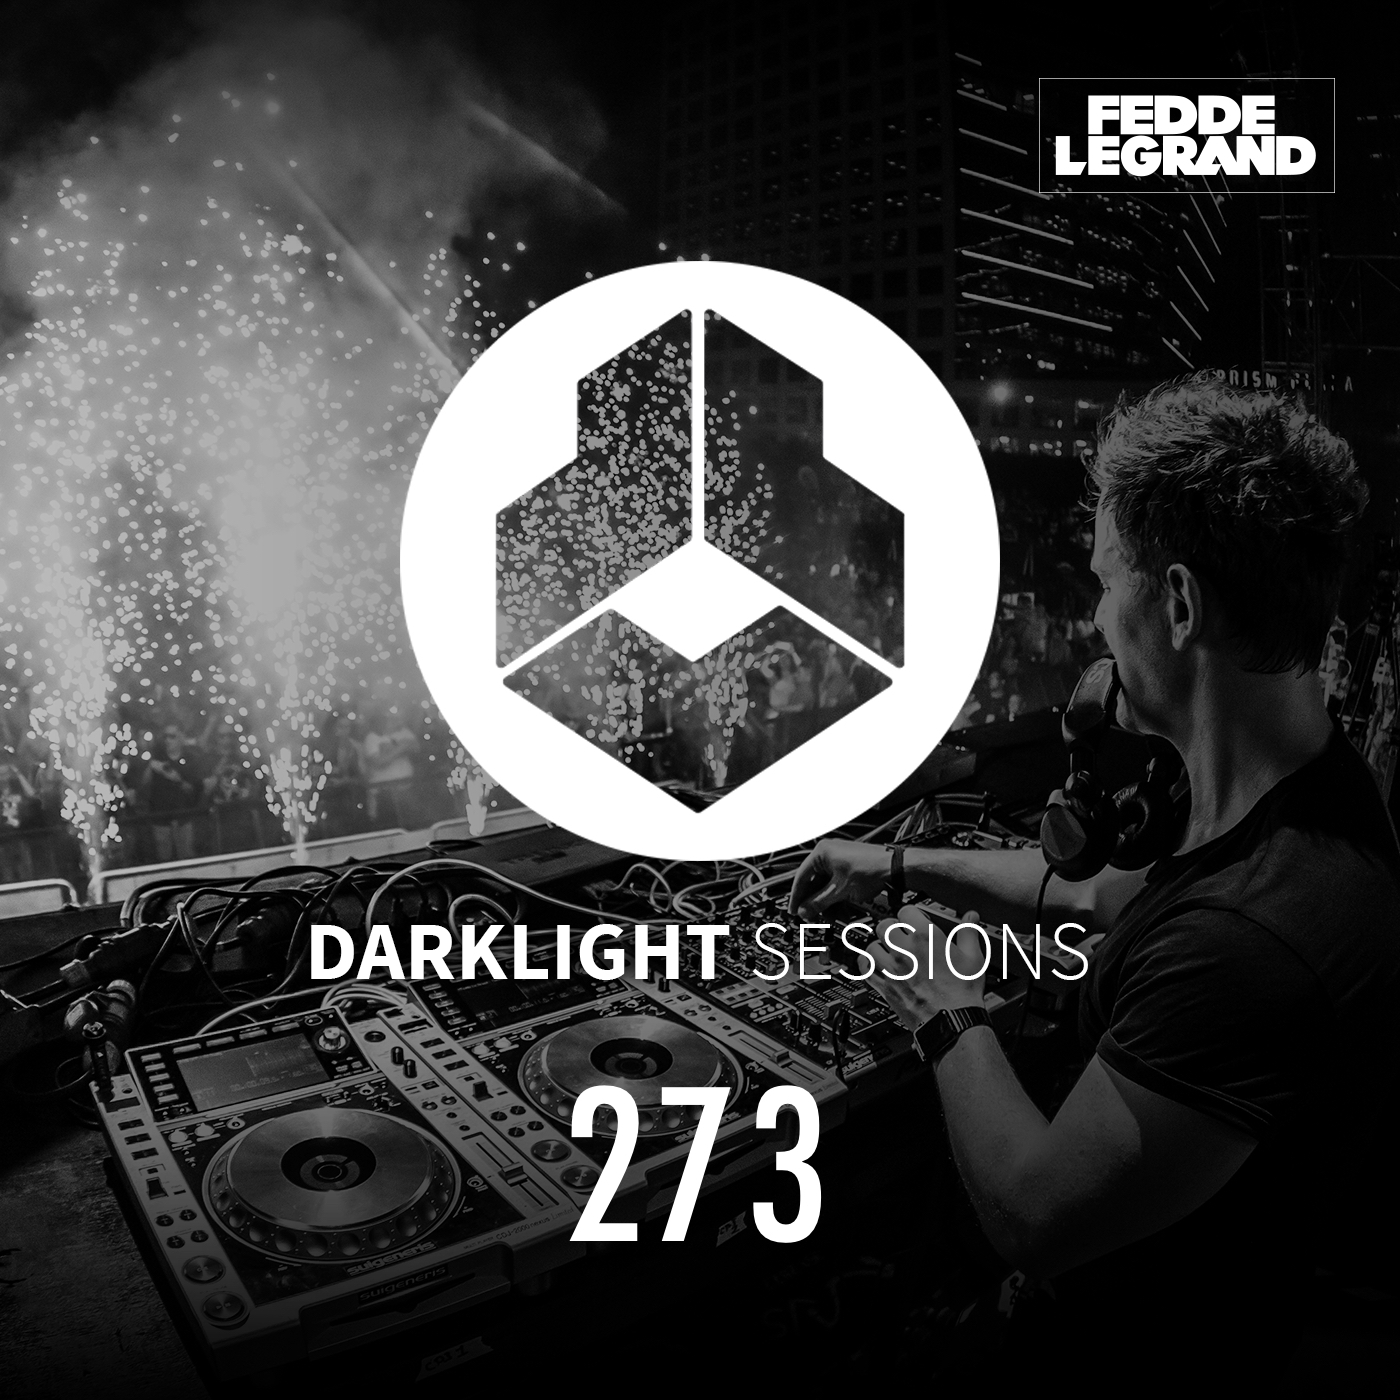 Darklight Sessions 273